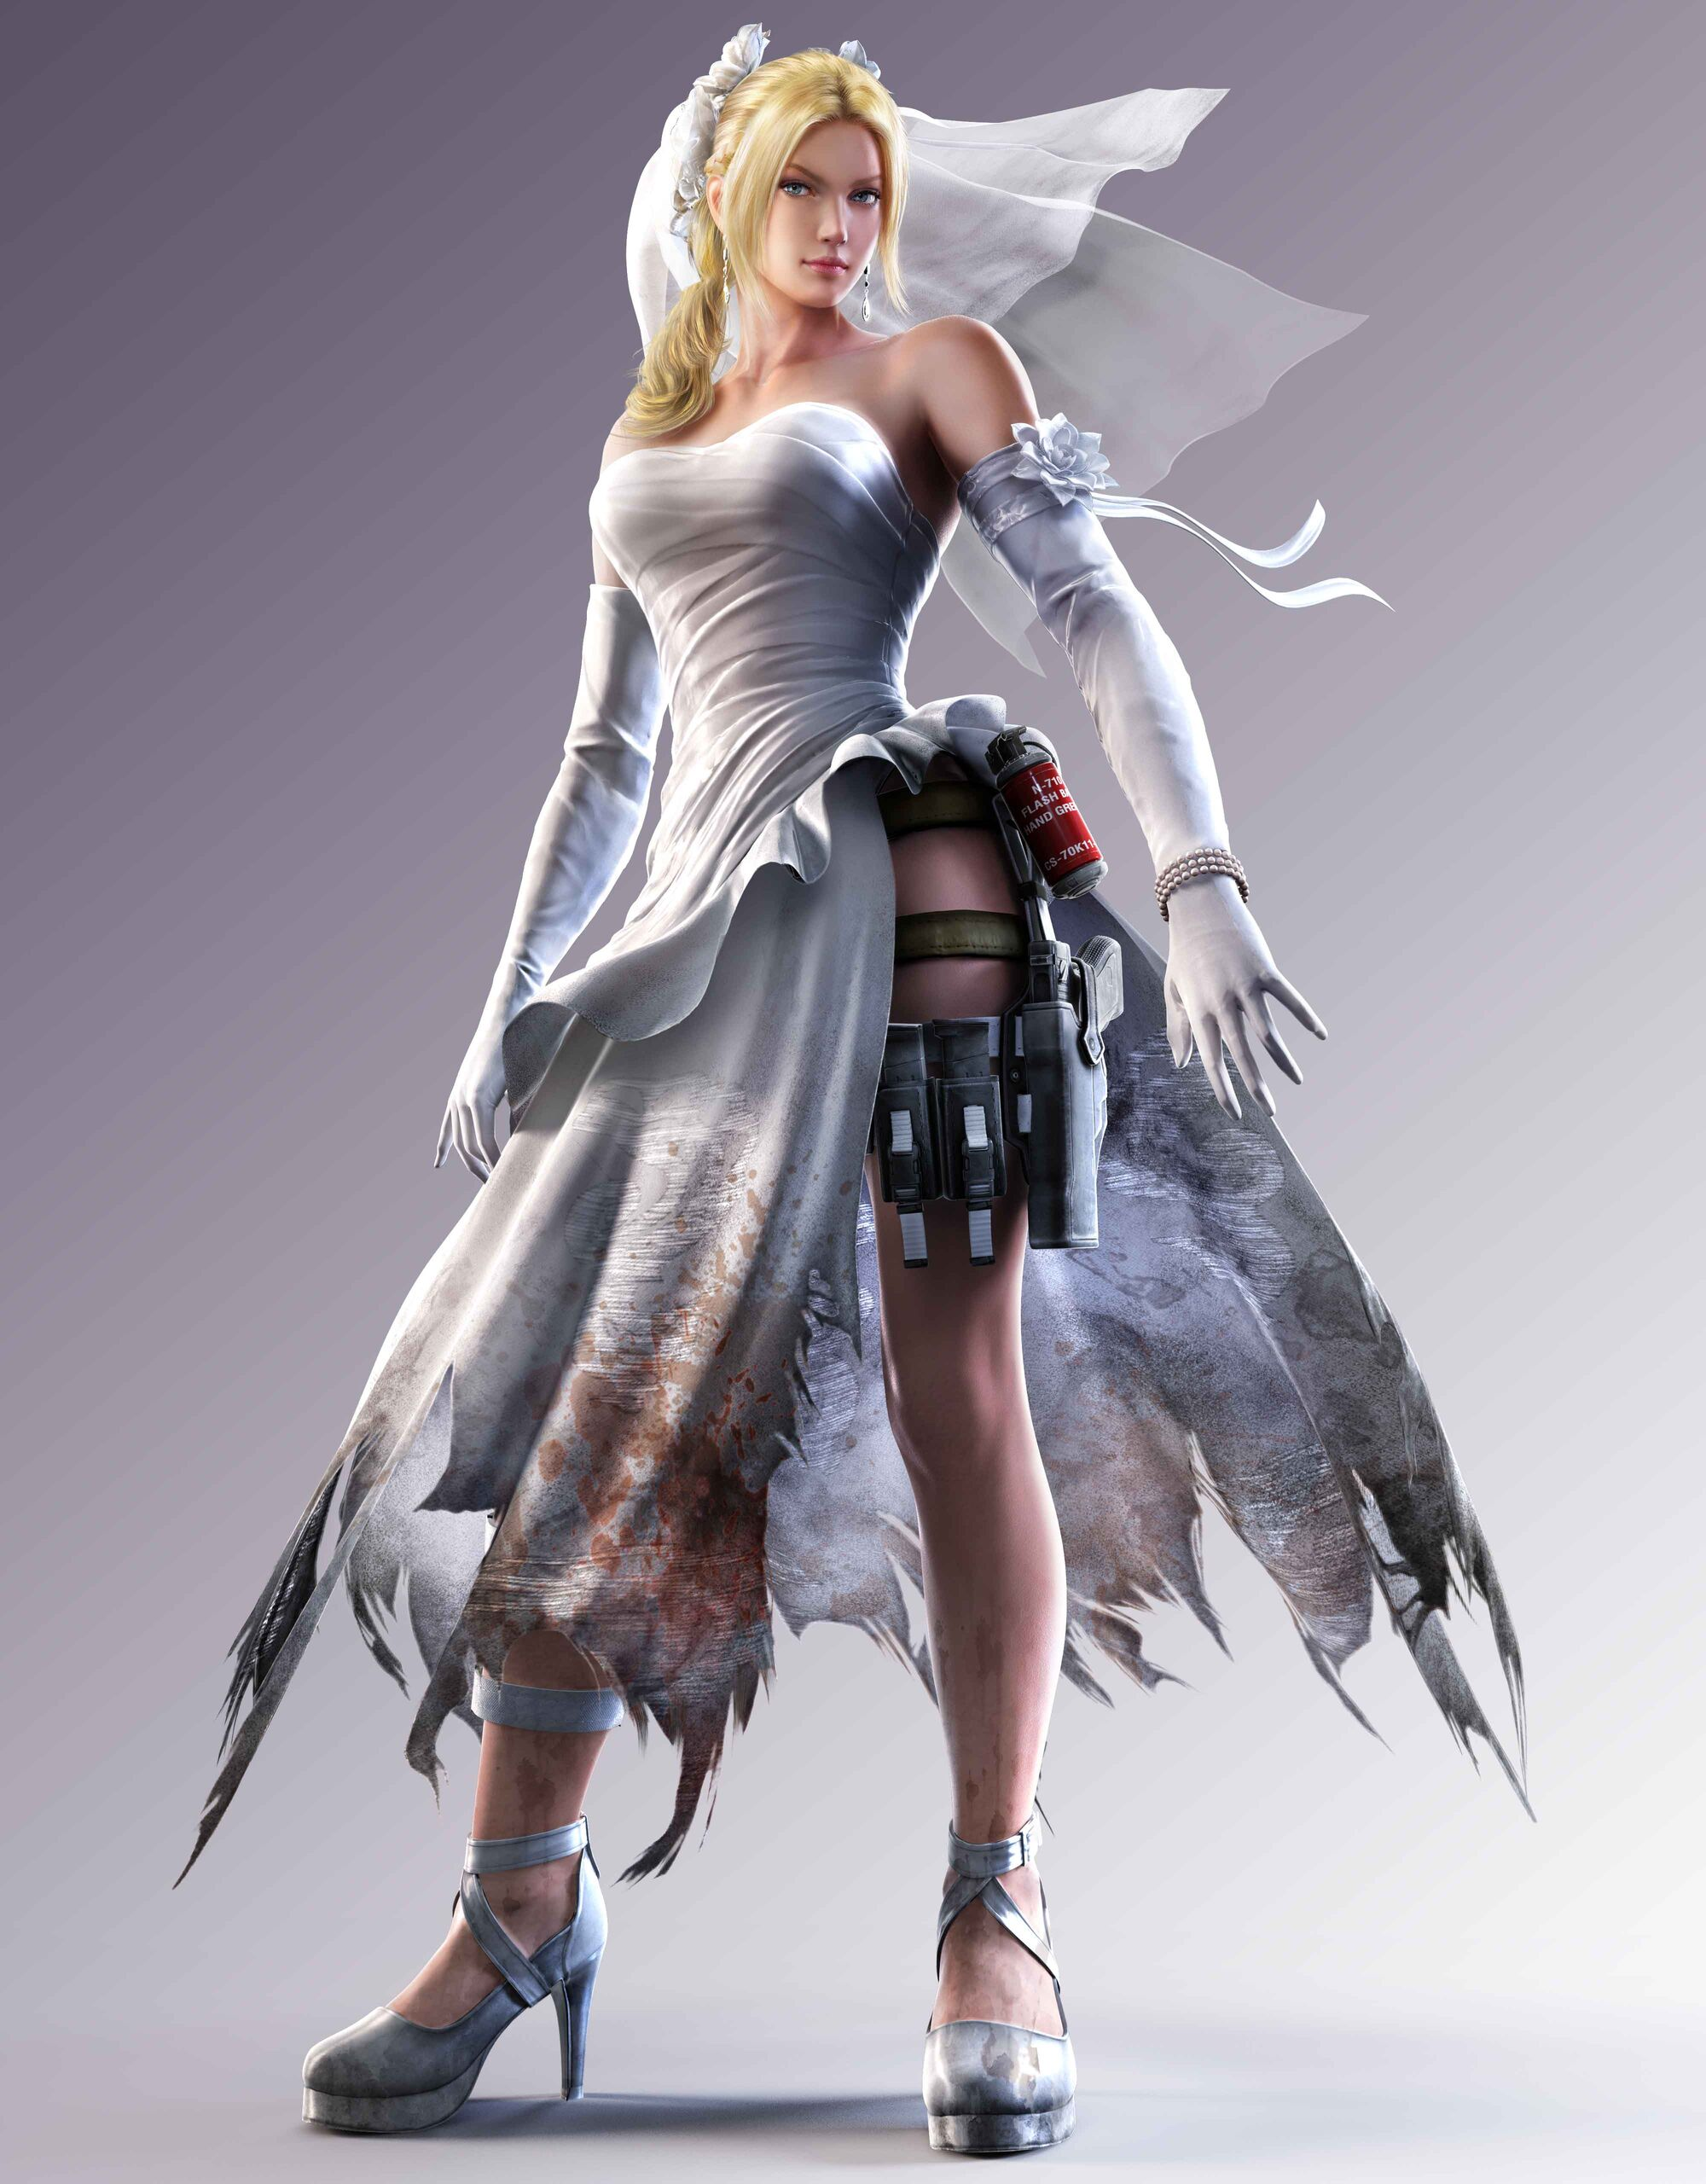 Nina Williams | Tekken Wiki | FANDOM powered by Wikia